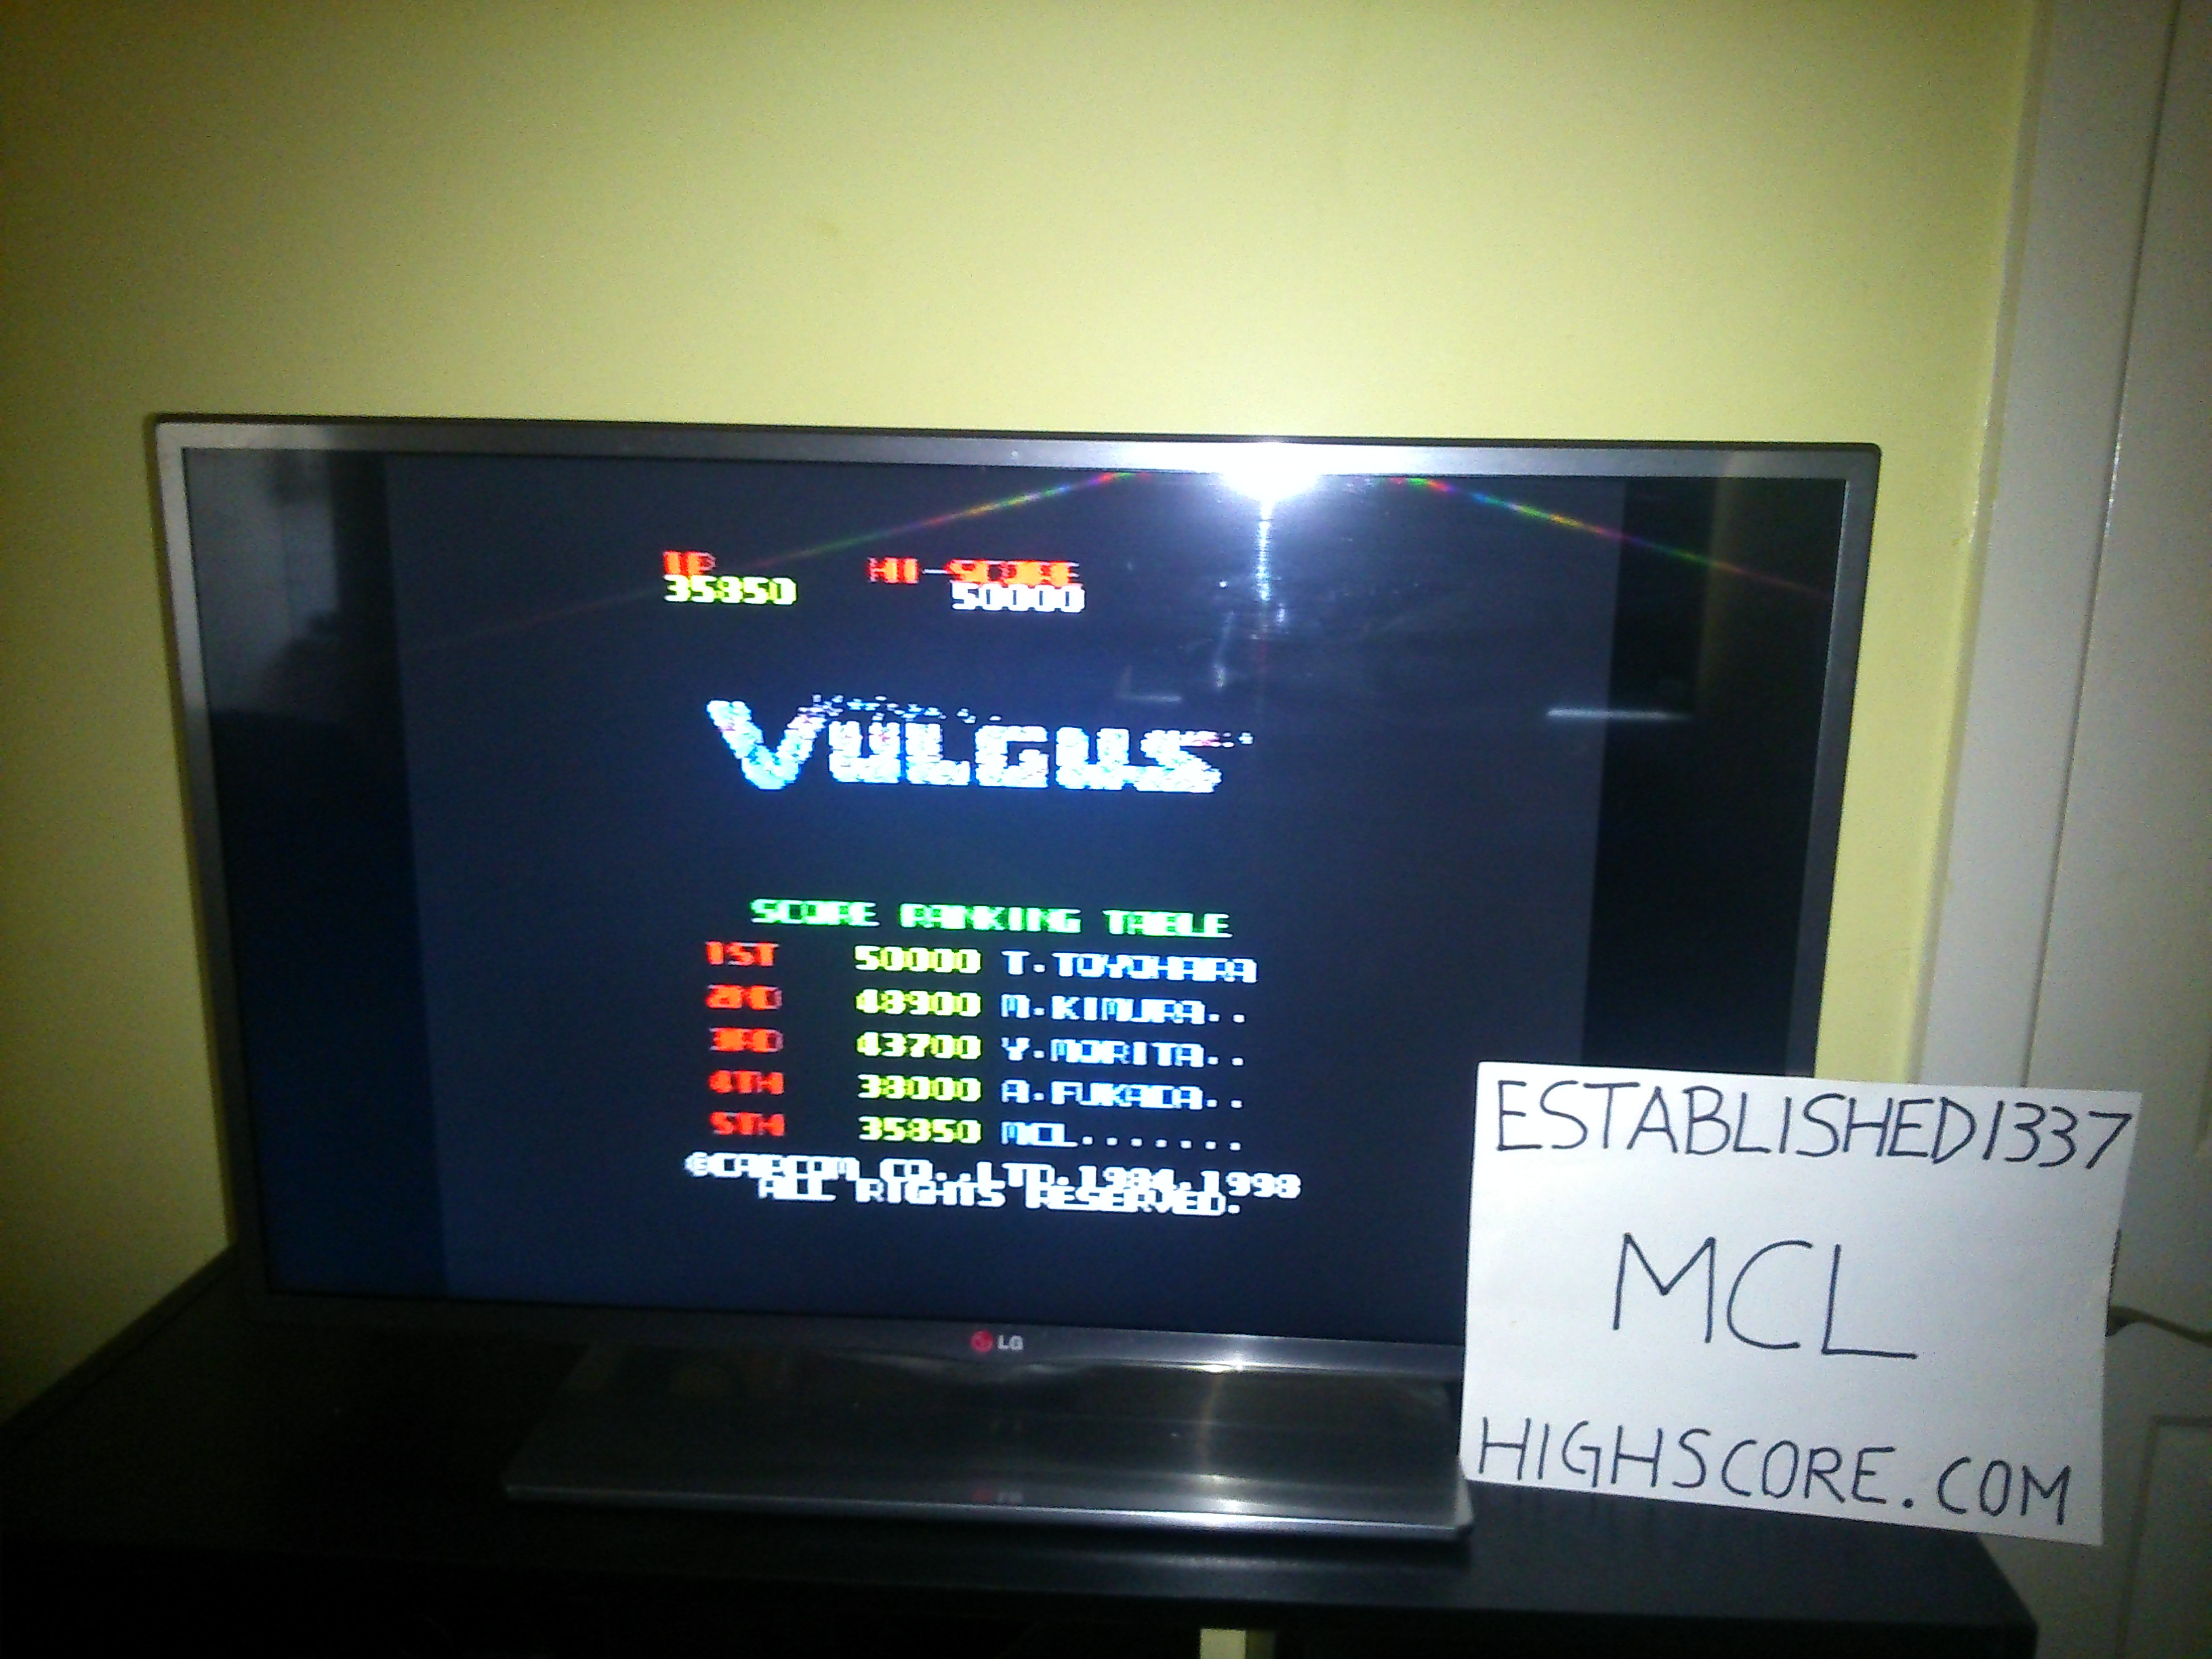 Capcom Generations 3: Vulgus 35,850 points